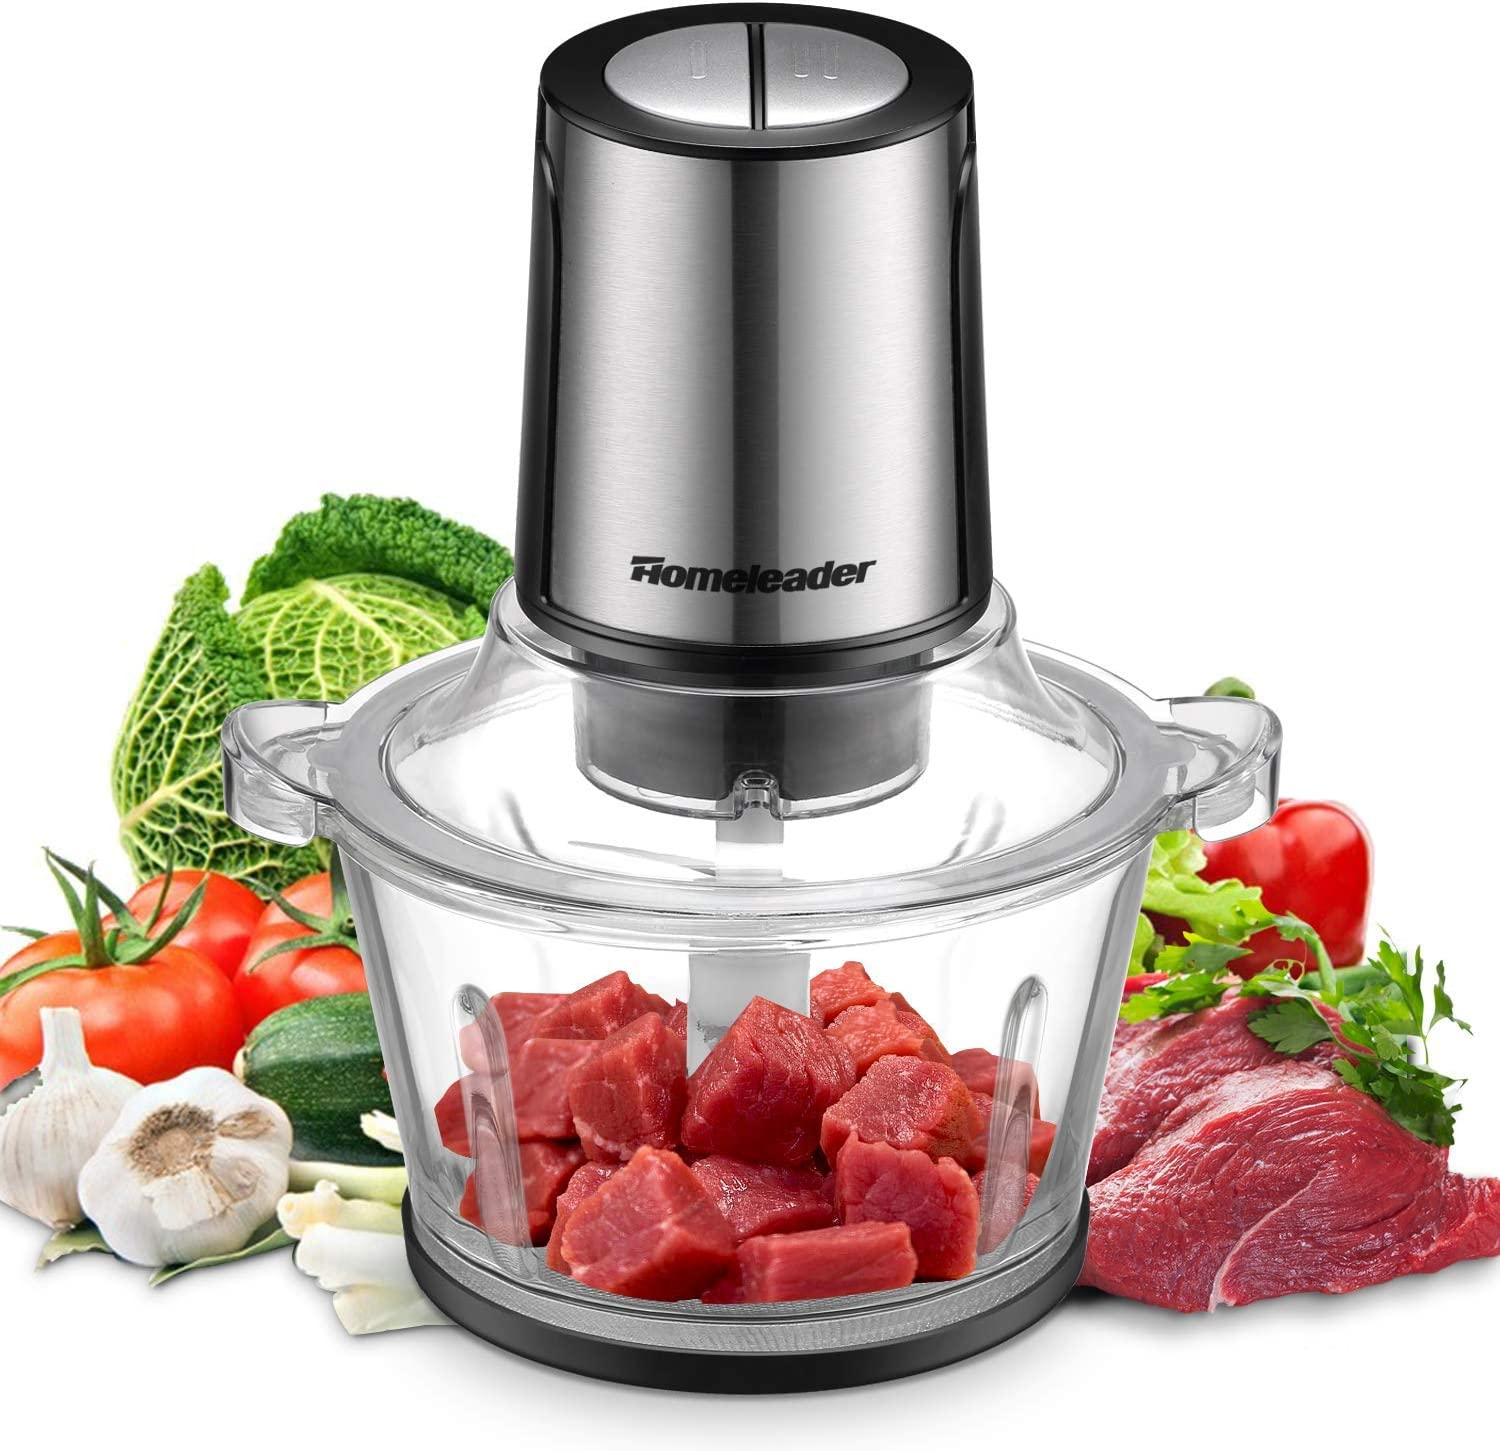 Electric Food Chopper, 2L BPA-Free Glass Bowl Blender Grinder for Meat, Vegetables, Fruits and Nuts, 8-Cup Food Processor with 2-Speed and 4 Sharp Blades (k56-017)